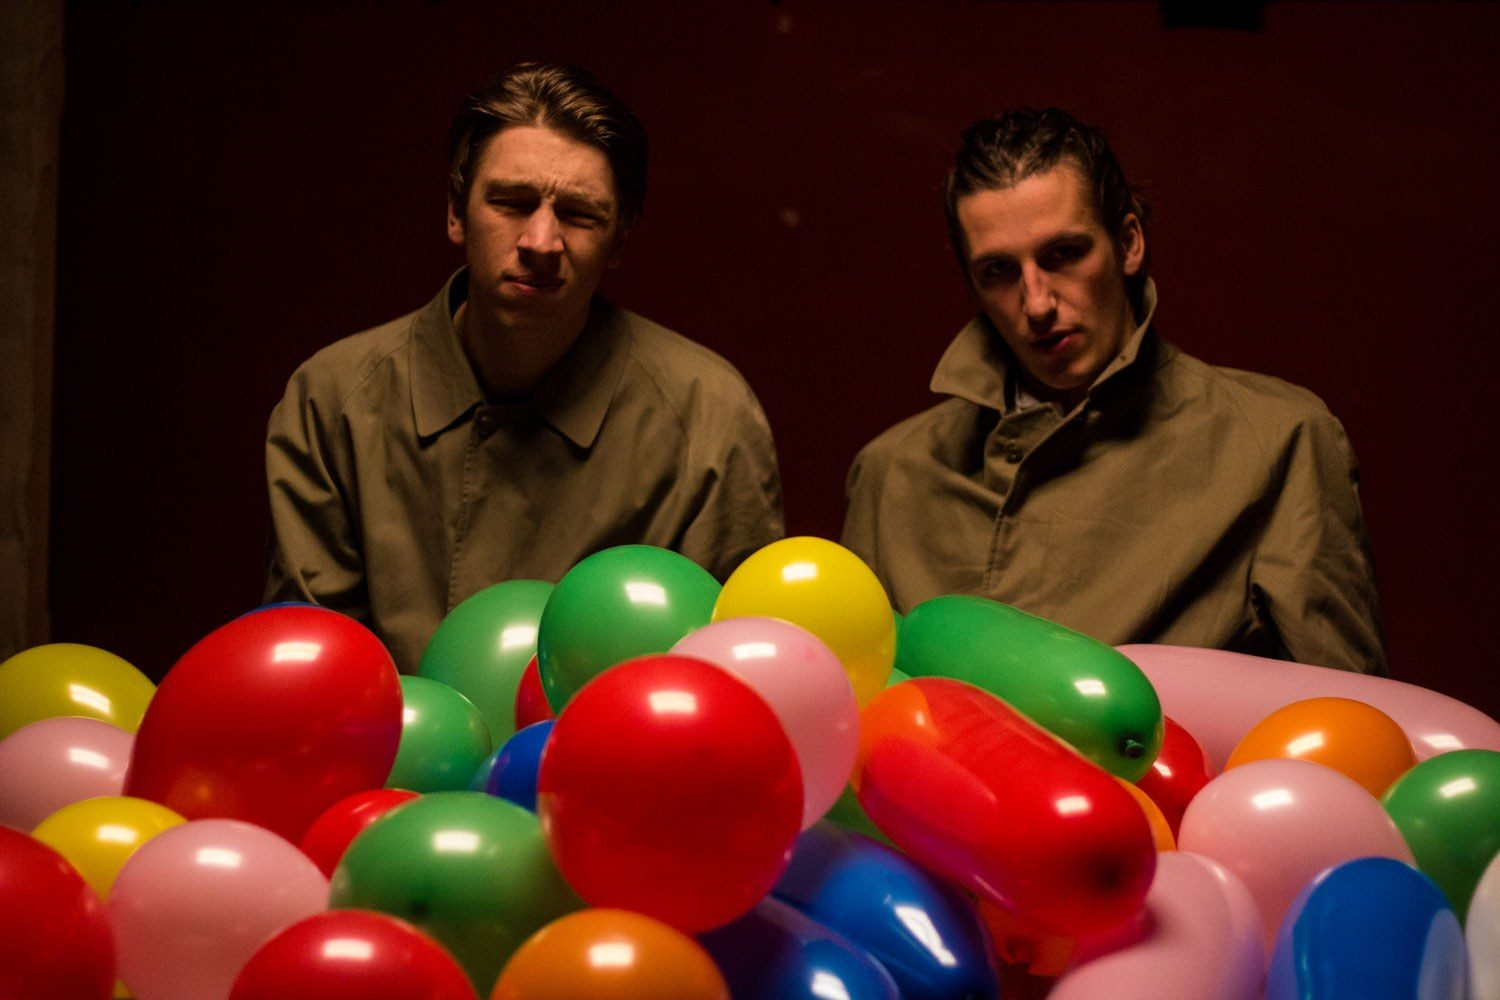 Drenge have released their new album, 'Strange Creatures' - give it a listen in full